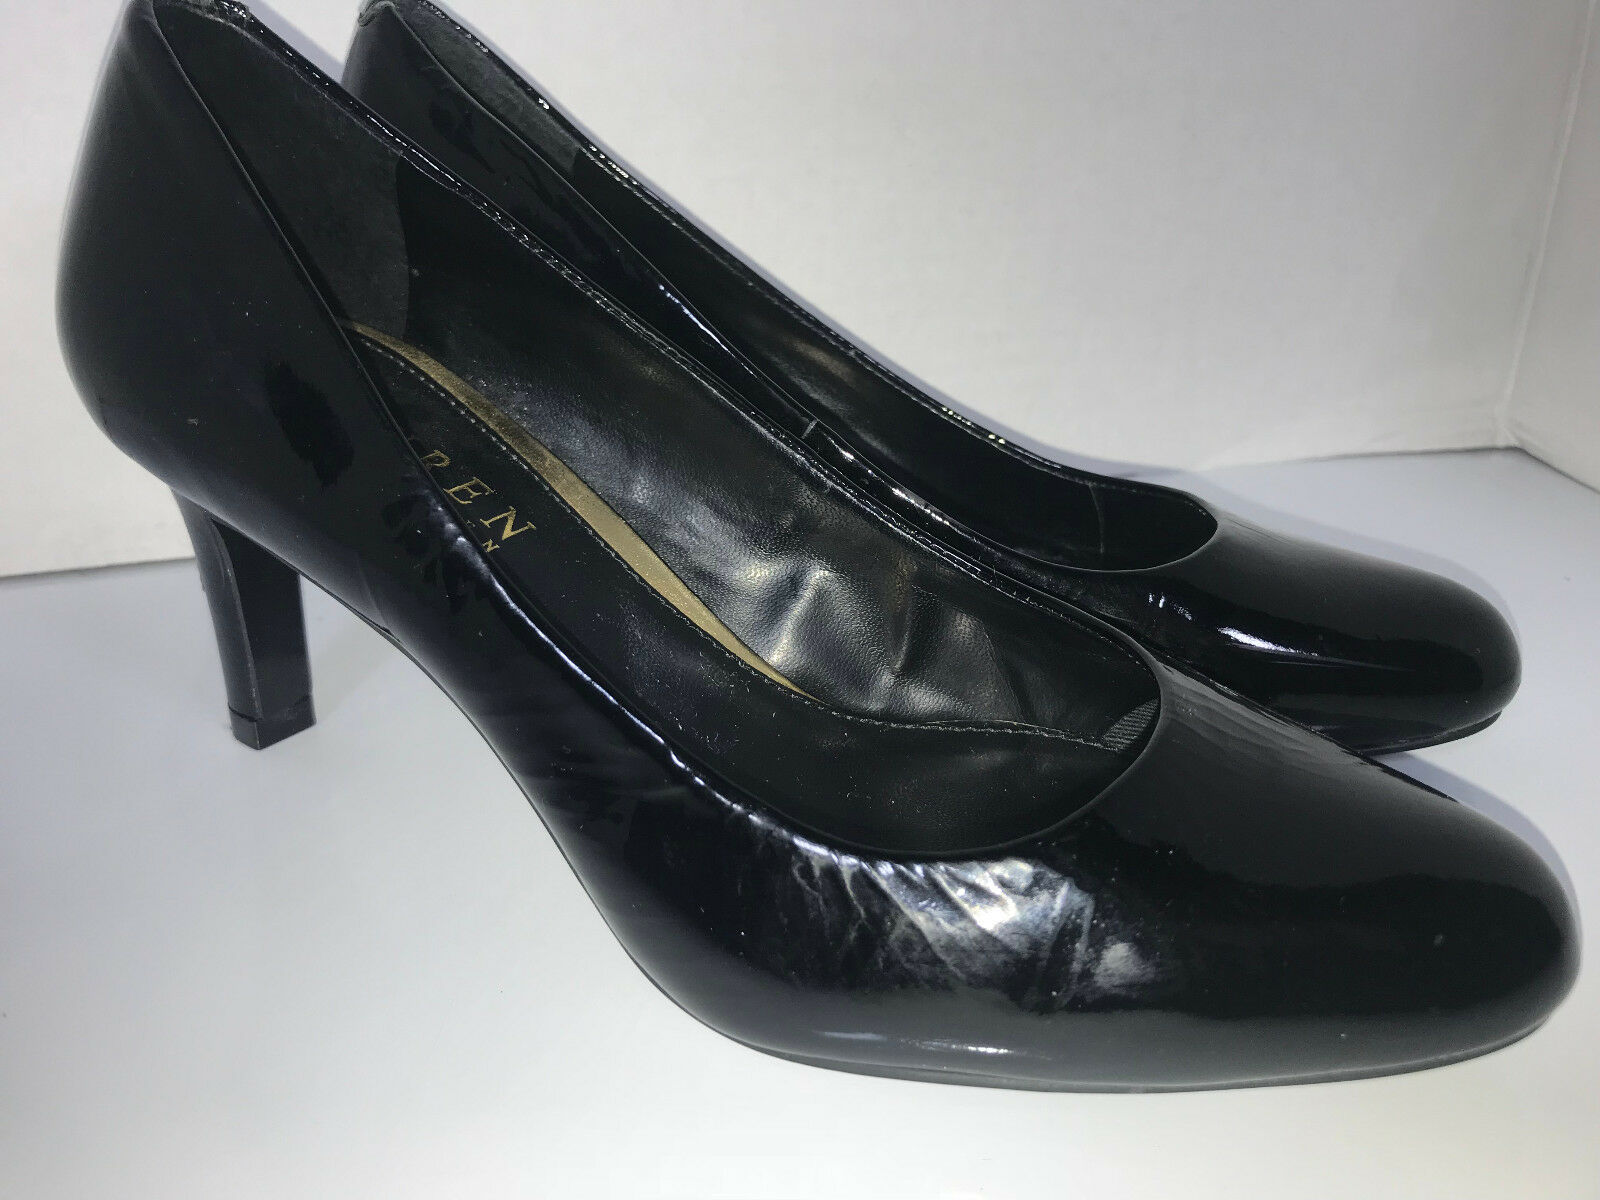 Lauren by Ralph Size 5 Black Patent Leather HARPER Stiletto High Heels 2.75